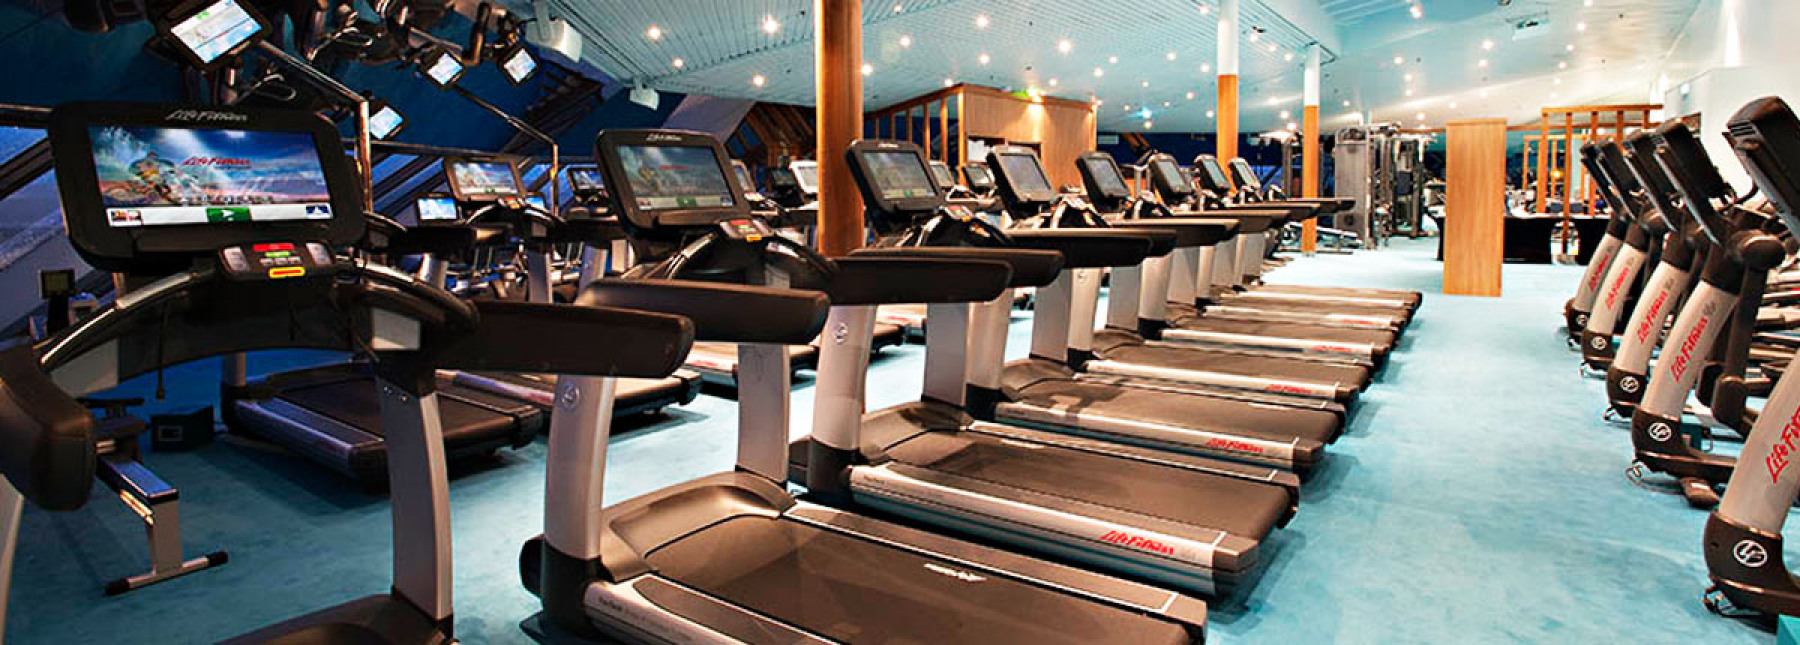 Carnival Cruise Lines Carnival Dream Interiorfitness-center-1.jpeg